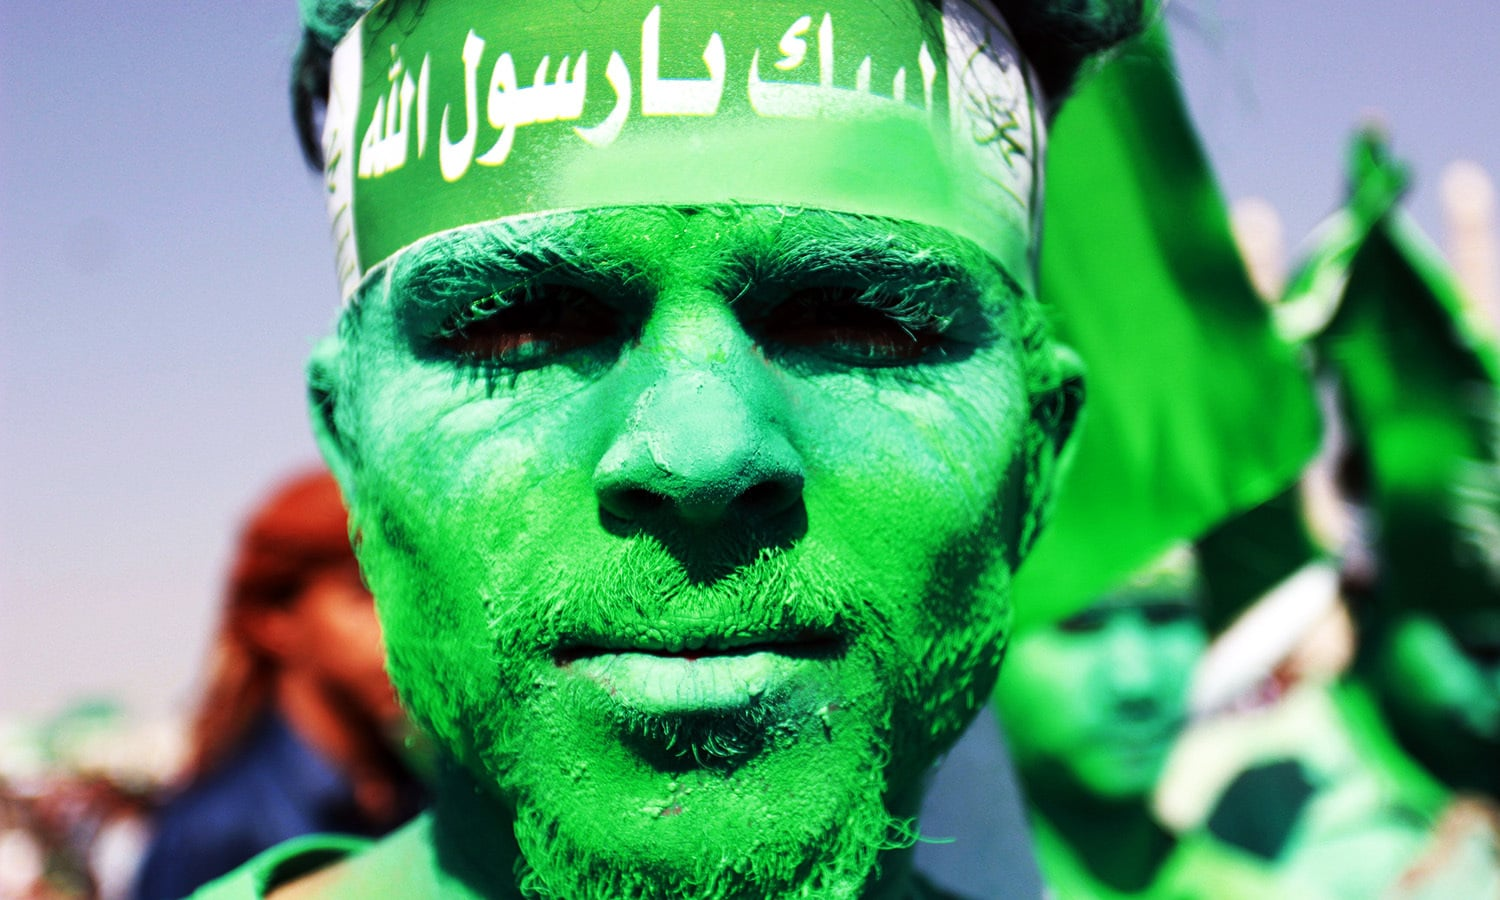 A Muslim Yemeni shows of his coloured face during a gathering marking the birth anniversary of Islam's Prophet Muhammad.—AFP